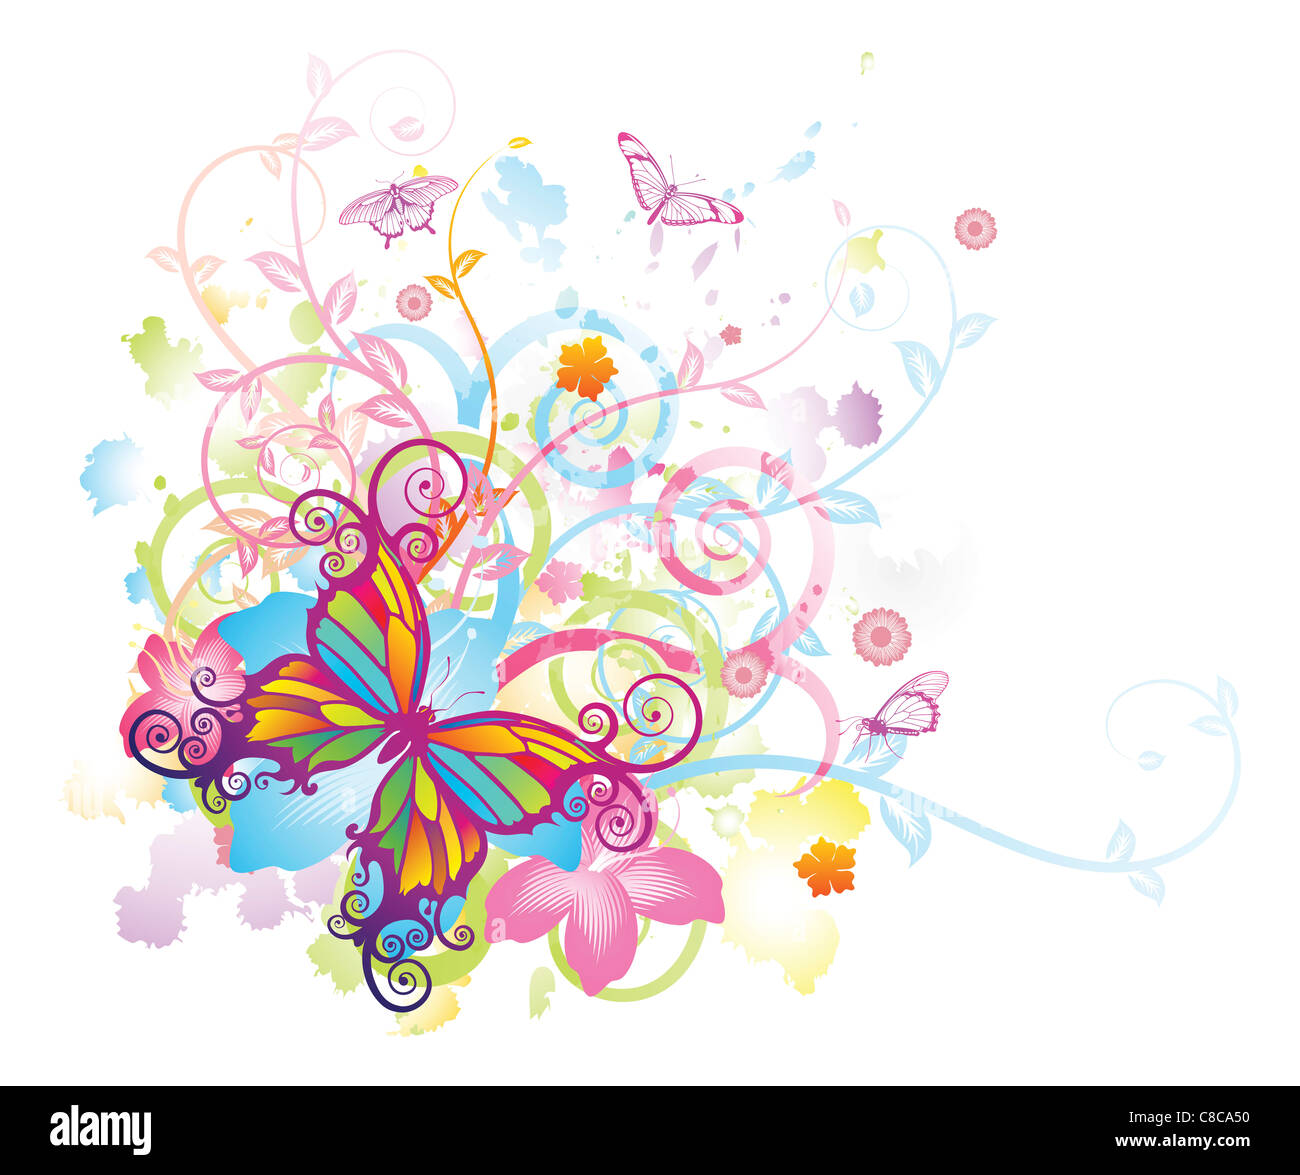 Abstract colourful butterfly background with stylised floral elements, patterns and splashes - Stock Image